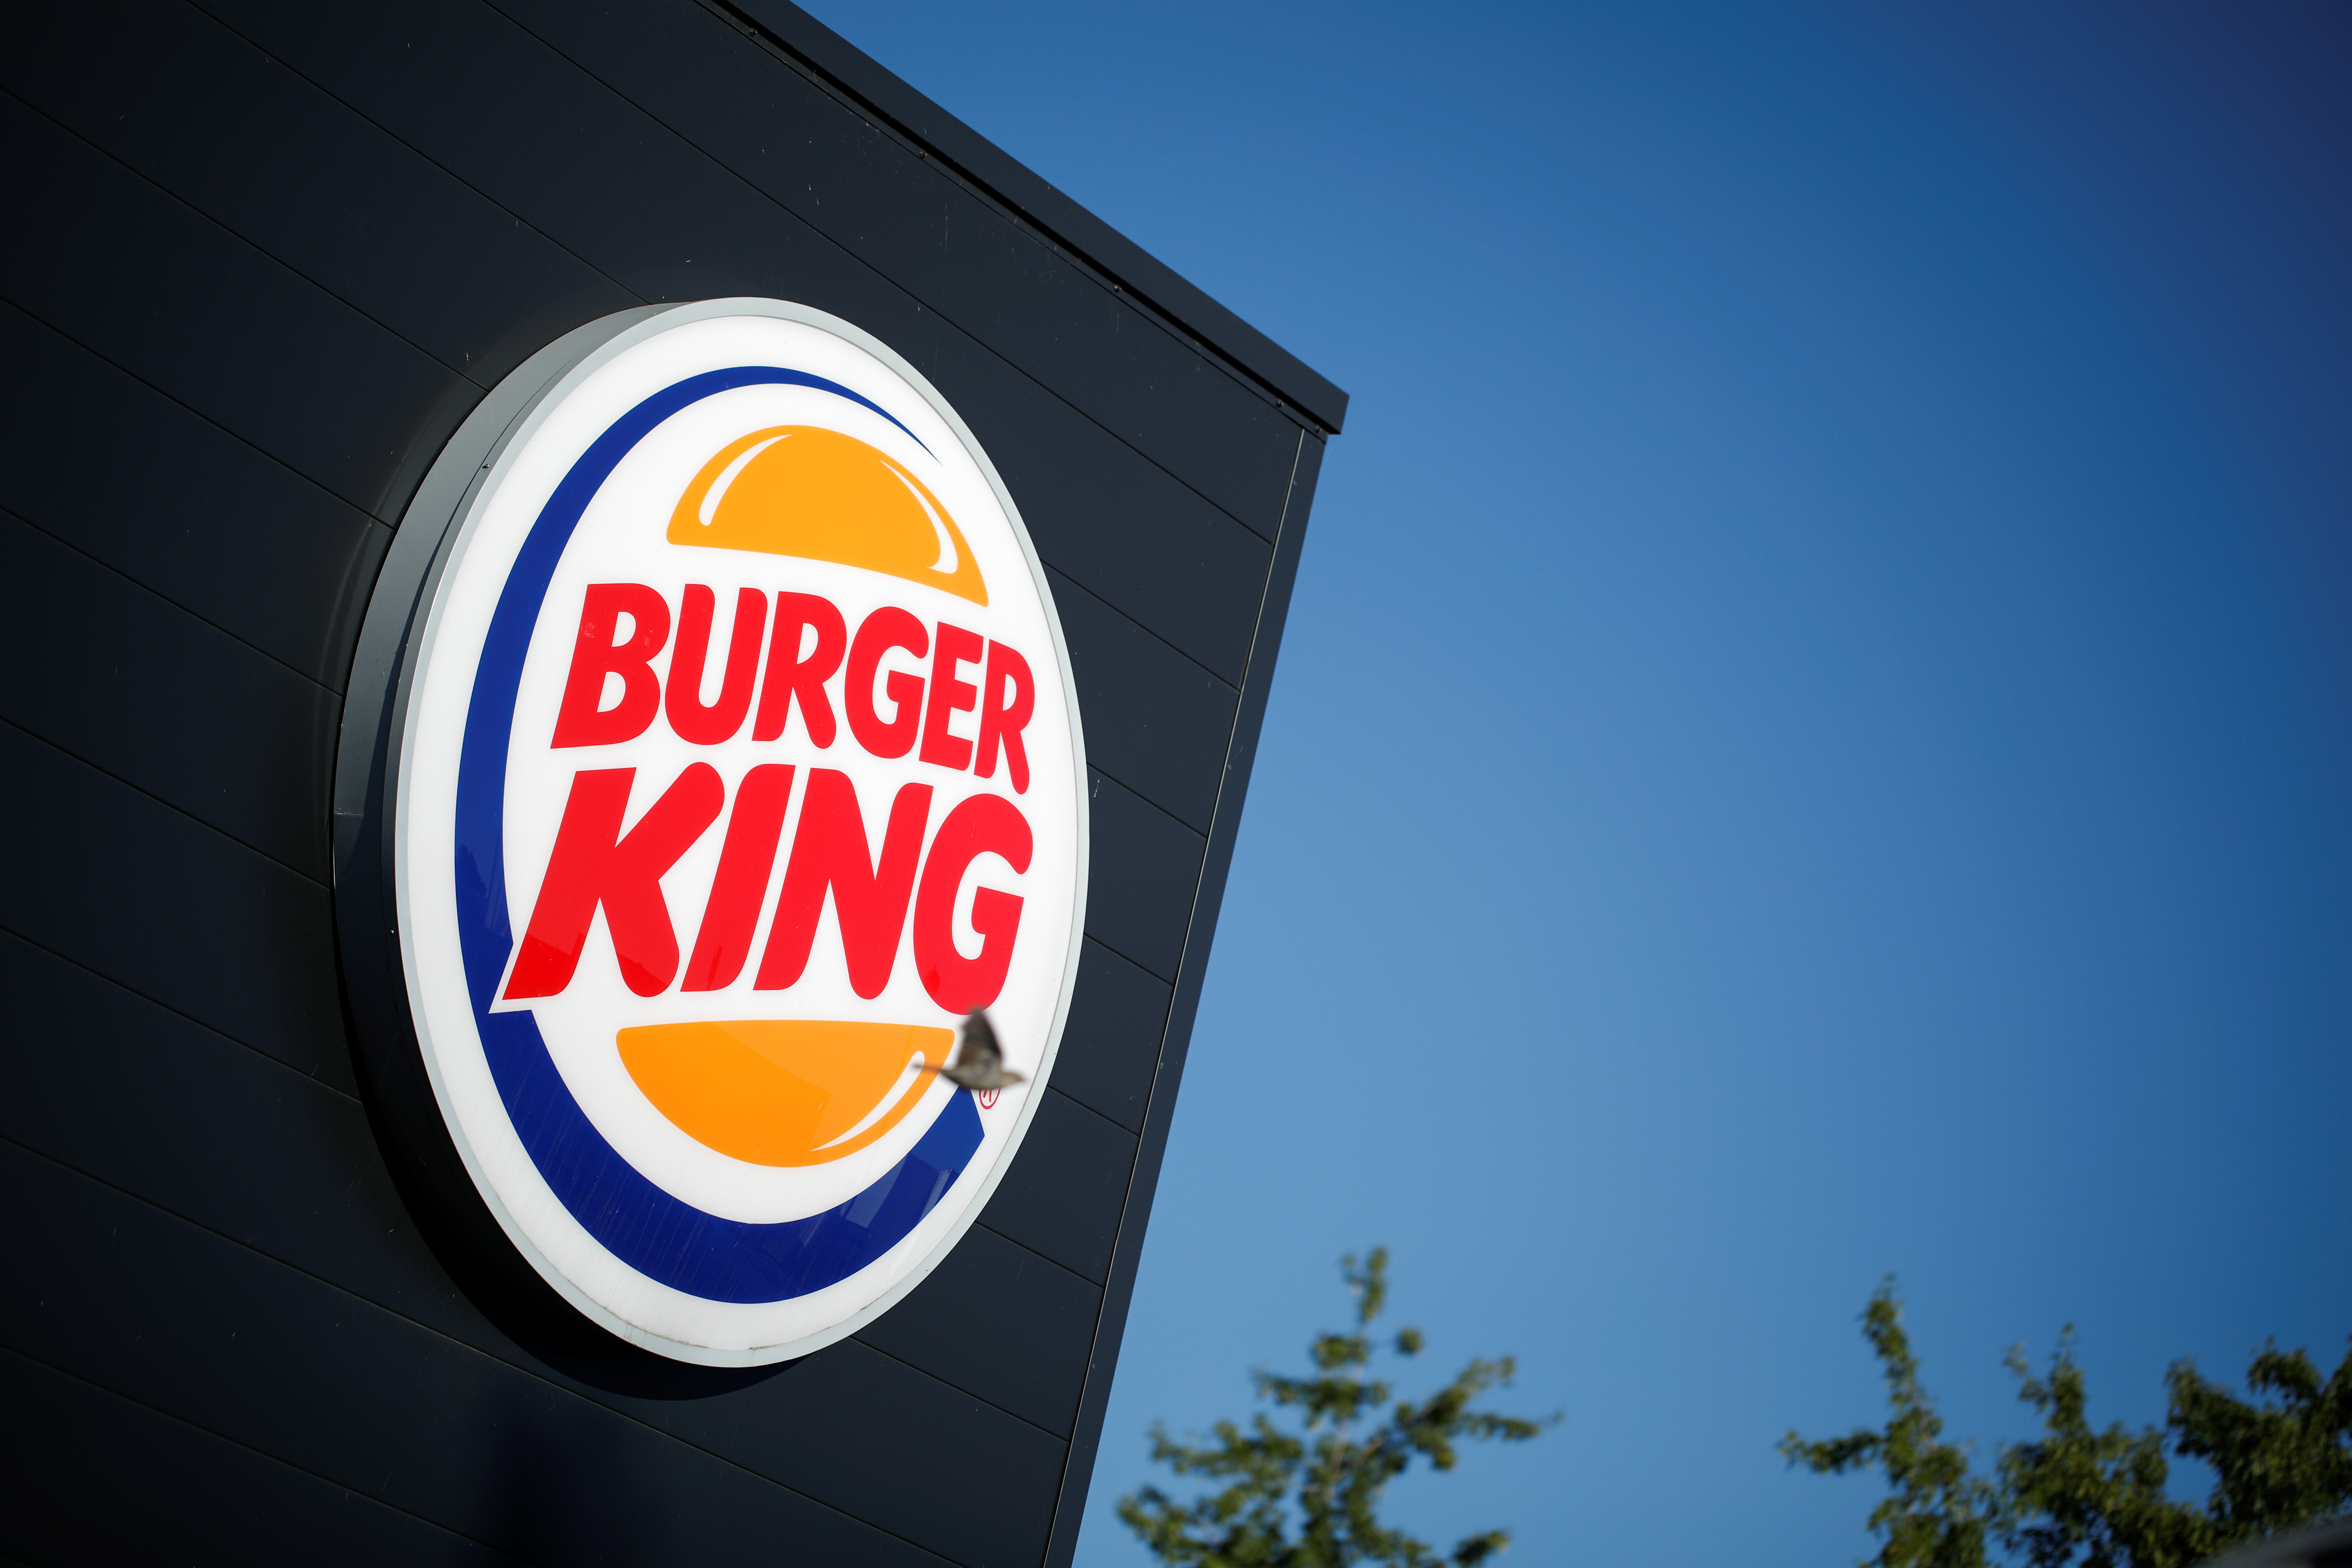 The Burger King company logo stands on a sign outside a restaurant in Bretigny-sur-Orge, near Paris, France, July 30, 2020. REUTERS/Benoit Tessier